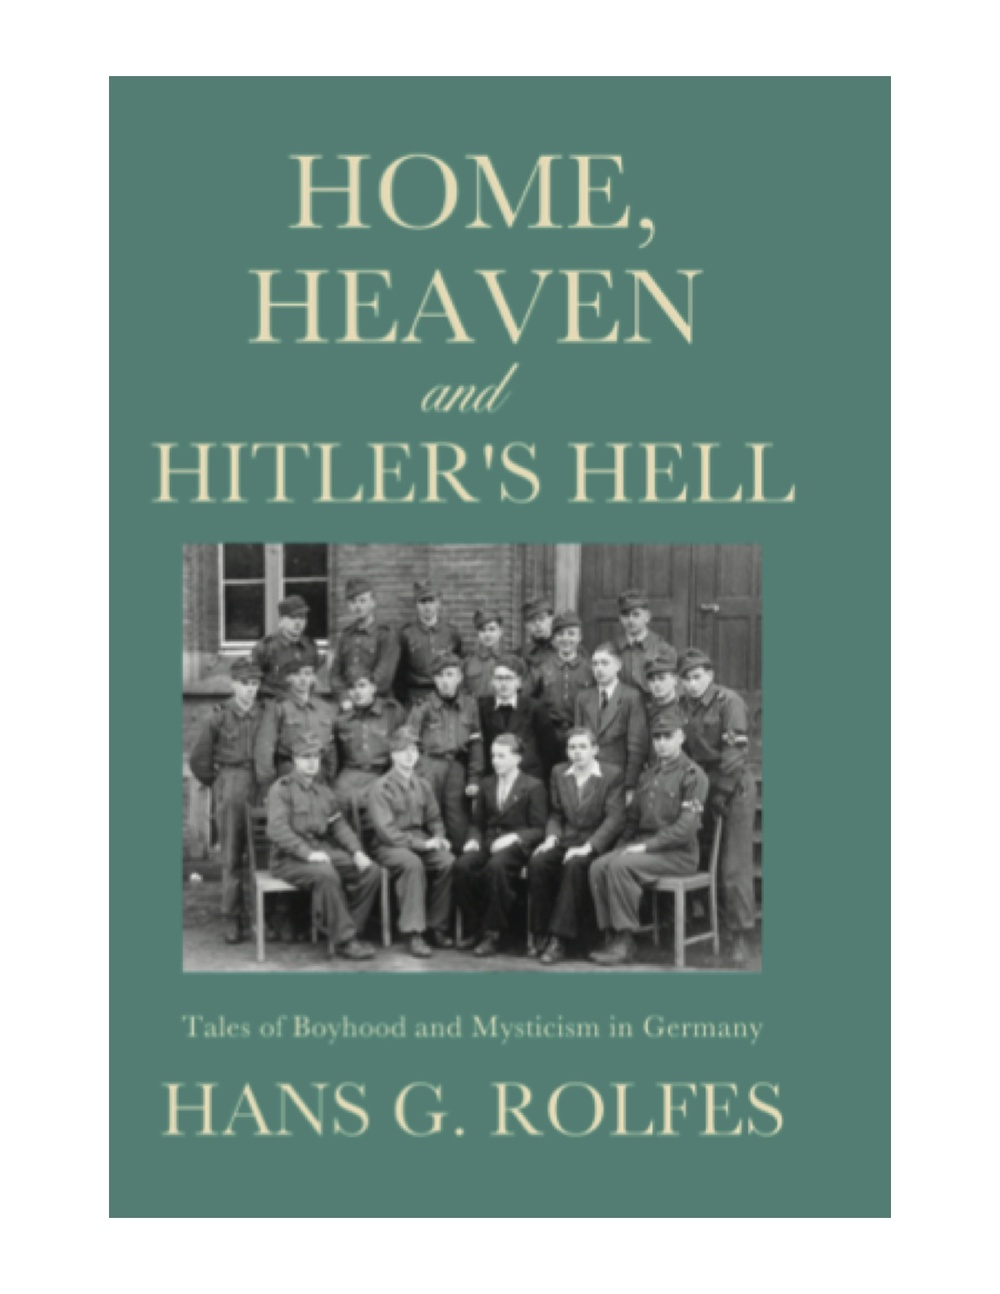 Rolfes Home, Heaven and Hitler's Hell cover.jpg